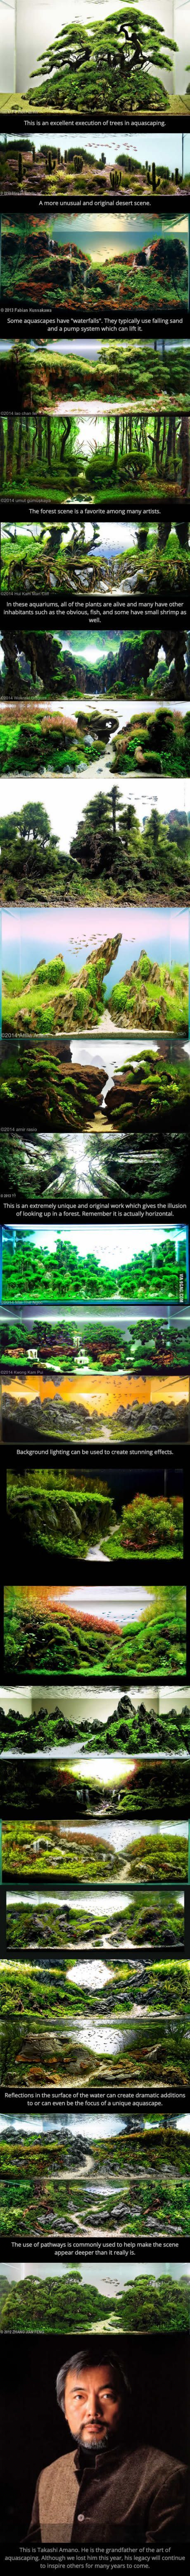 This Is The Art Aquascaping